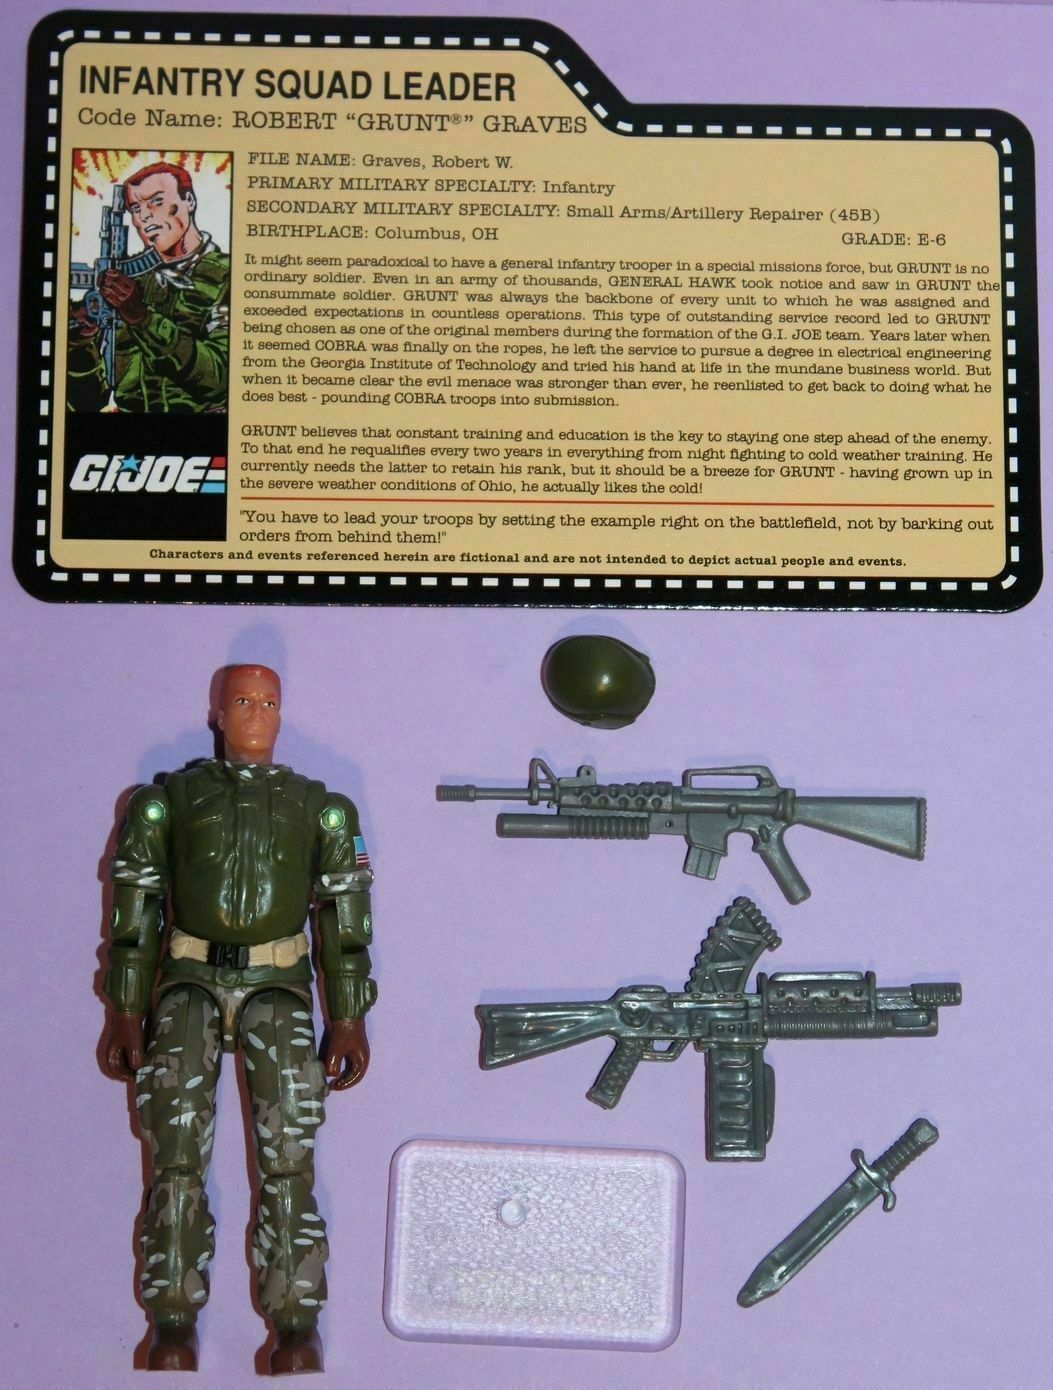 GI JOE ROBERT GRUNT GRAVES (Version 10) INFANTRY SQUAD LEADER Series  23 (2007)